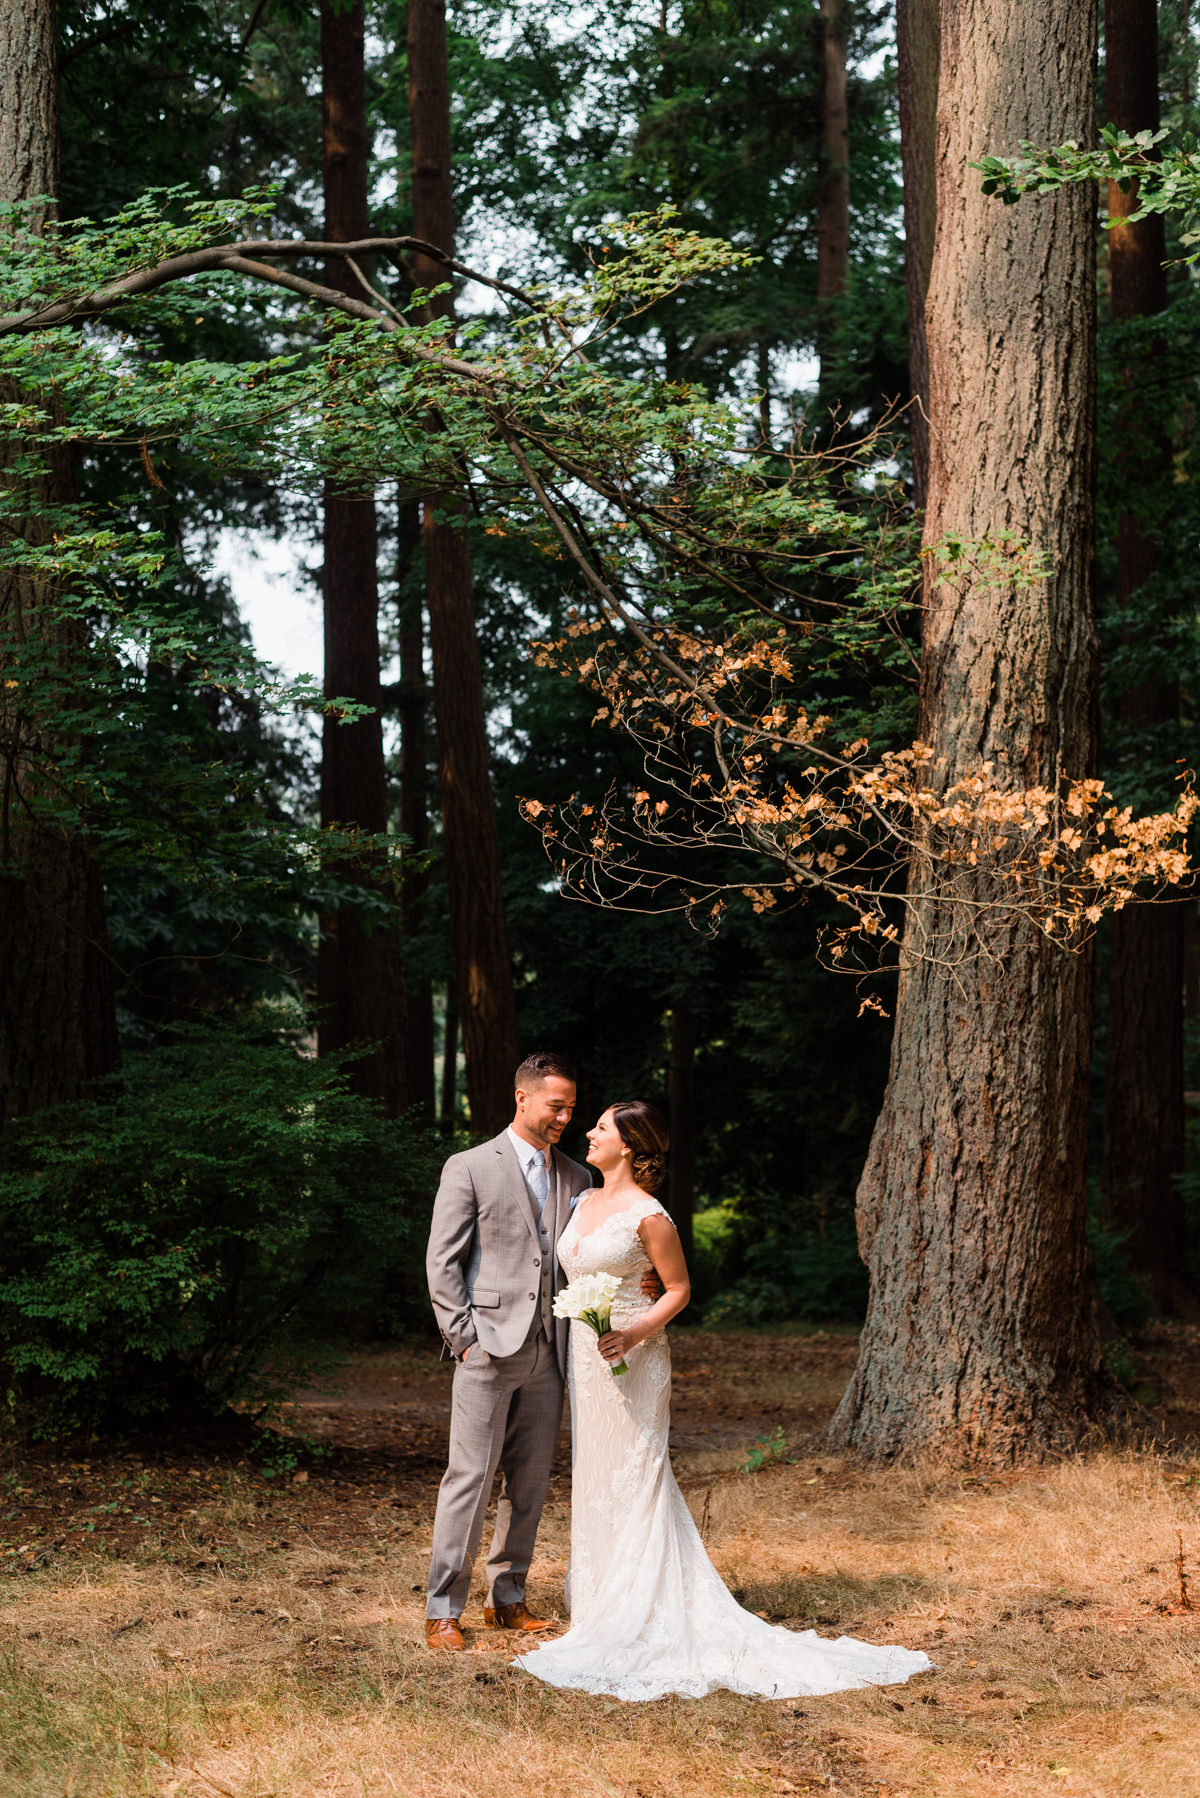 Stanley Park Pavilion wedding photos